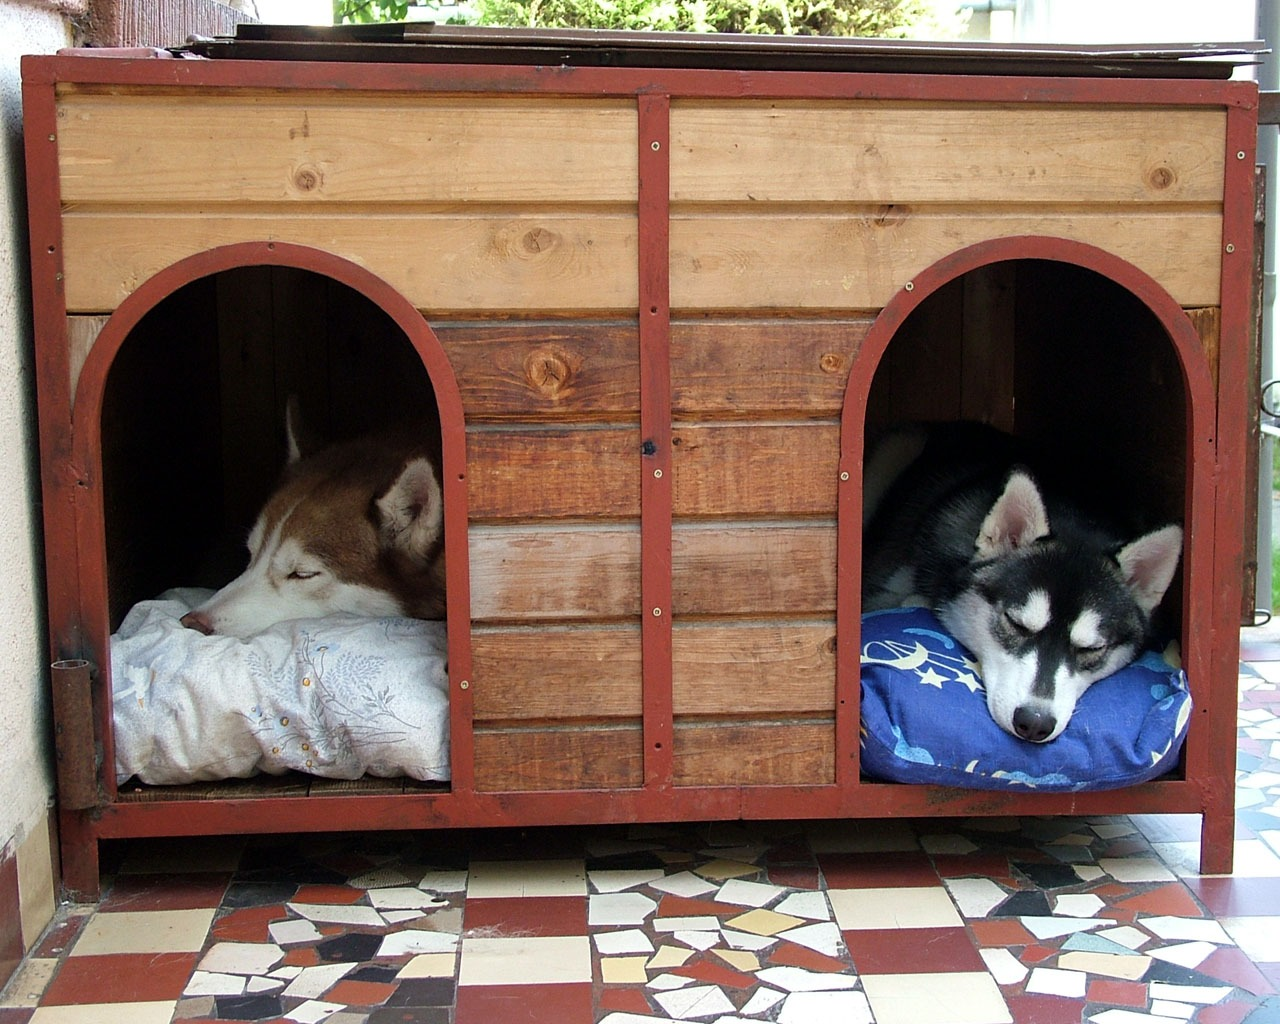 A large doghouse provides shade and a cozy place for two huskies to nap.